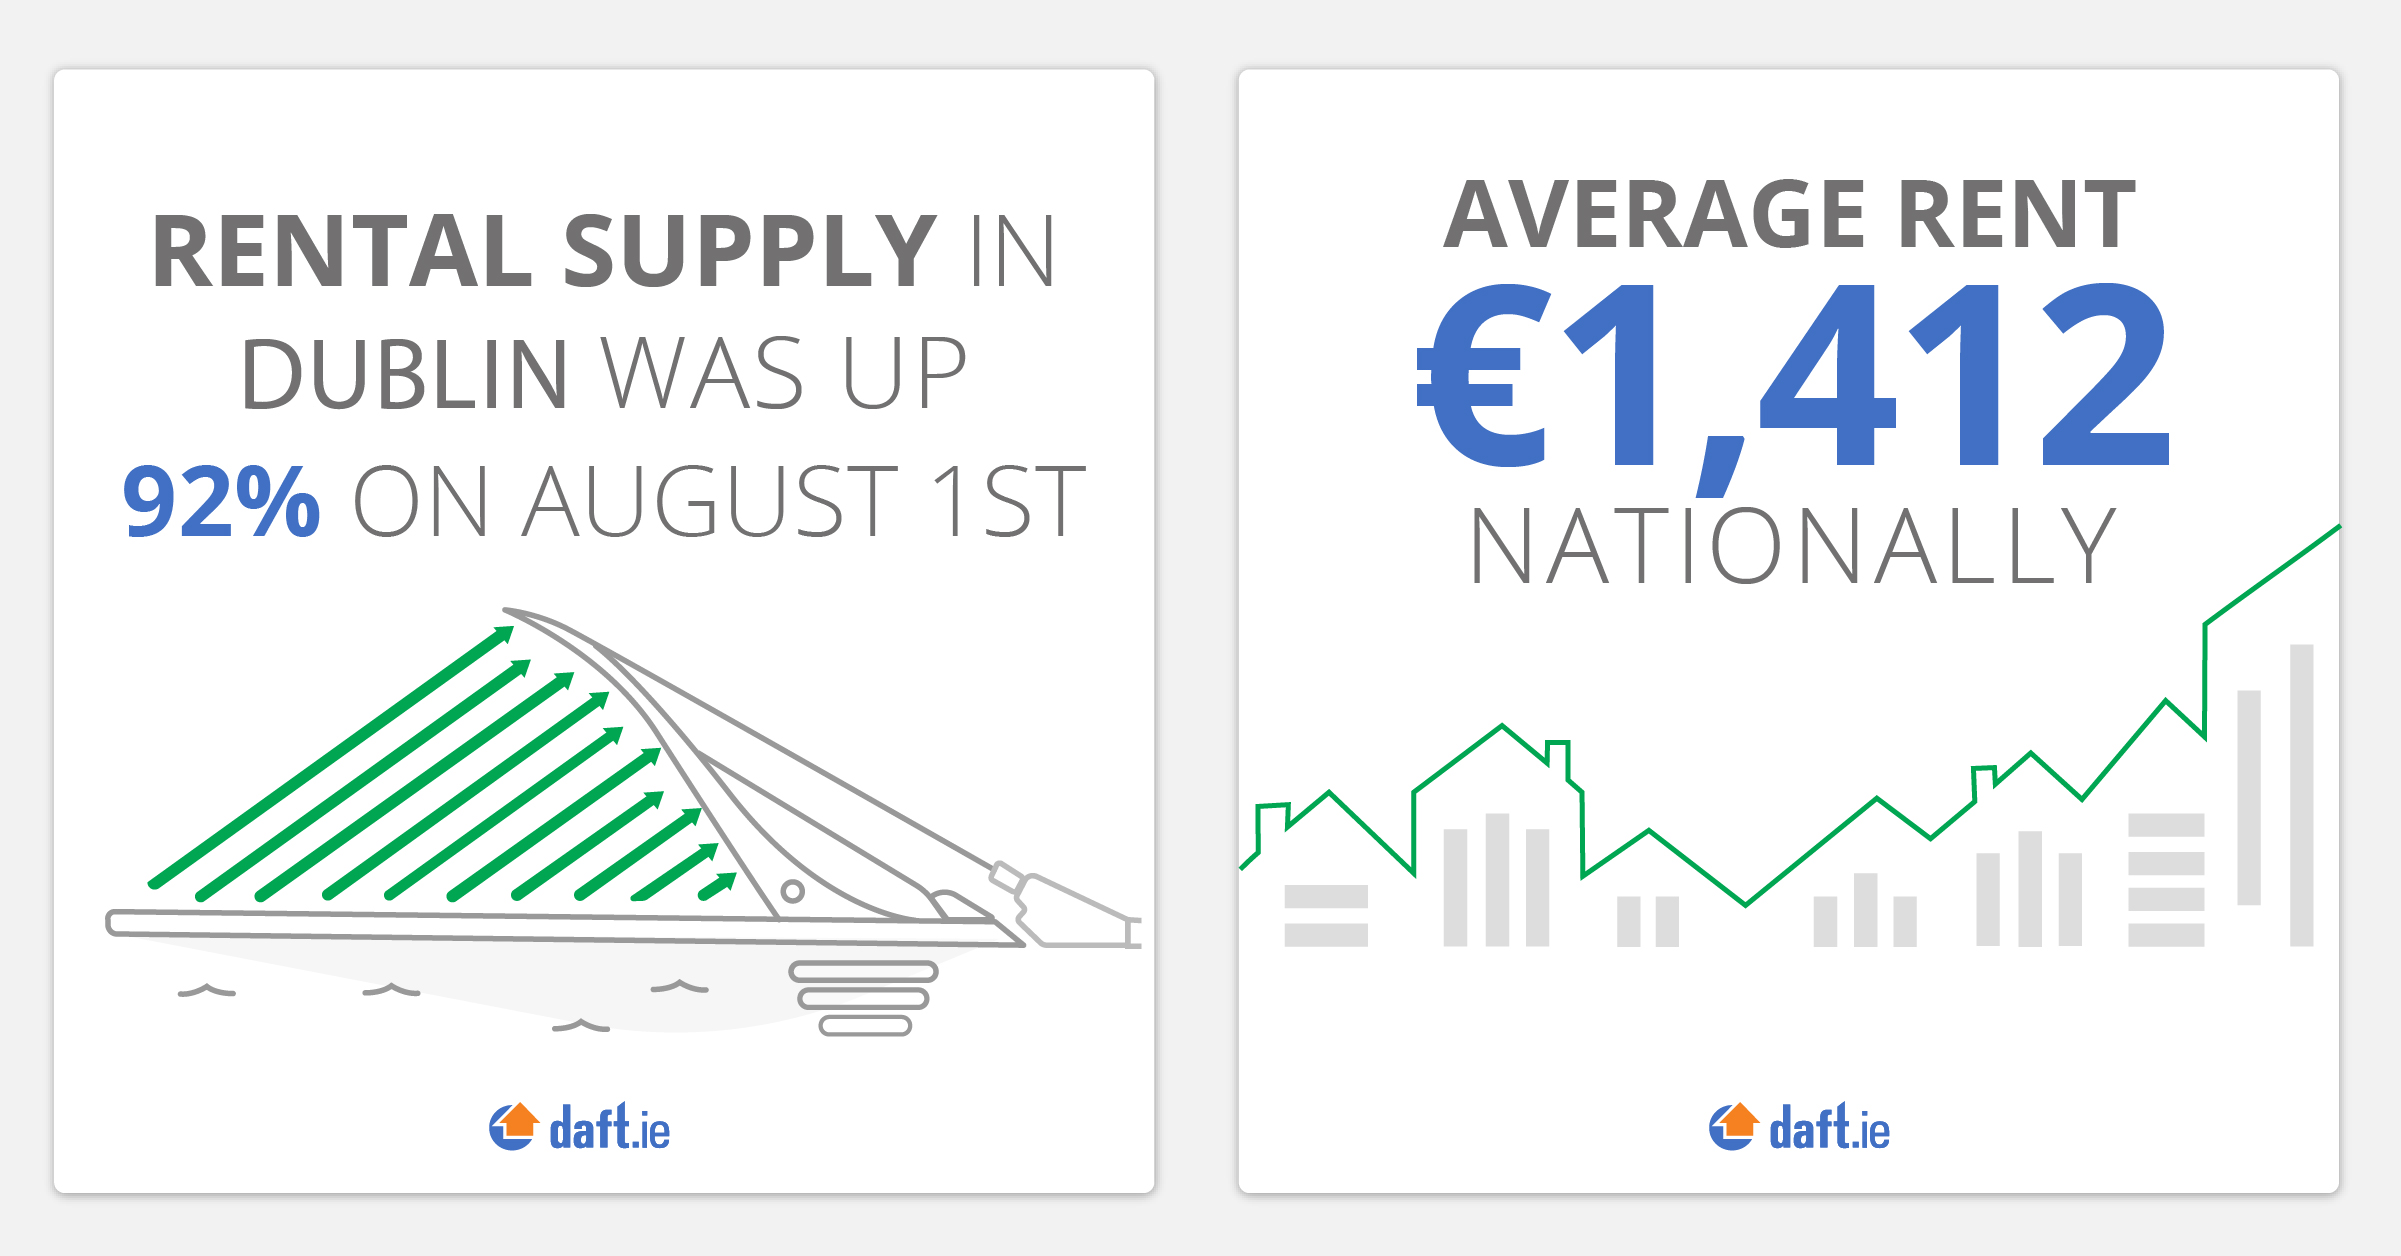 Rental supply in Dublin and average rent nationally